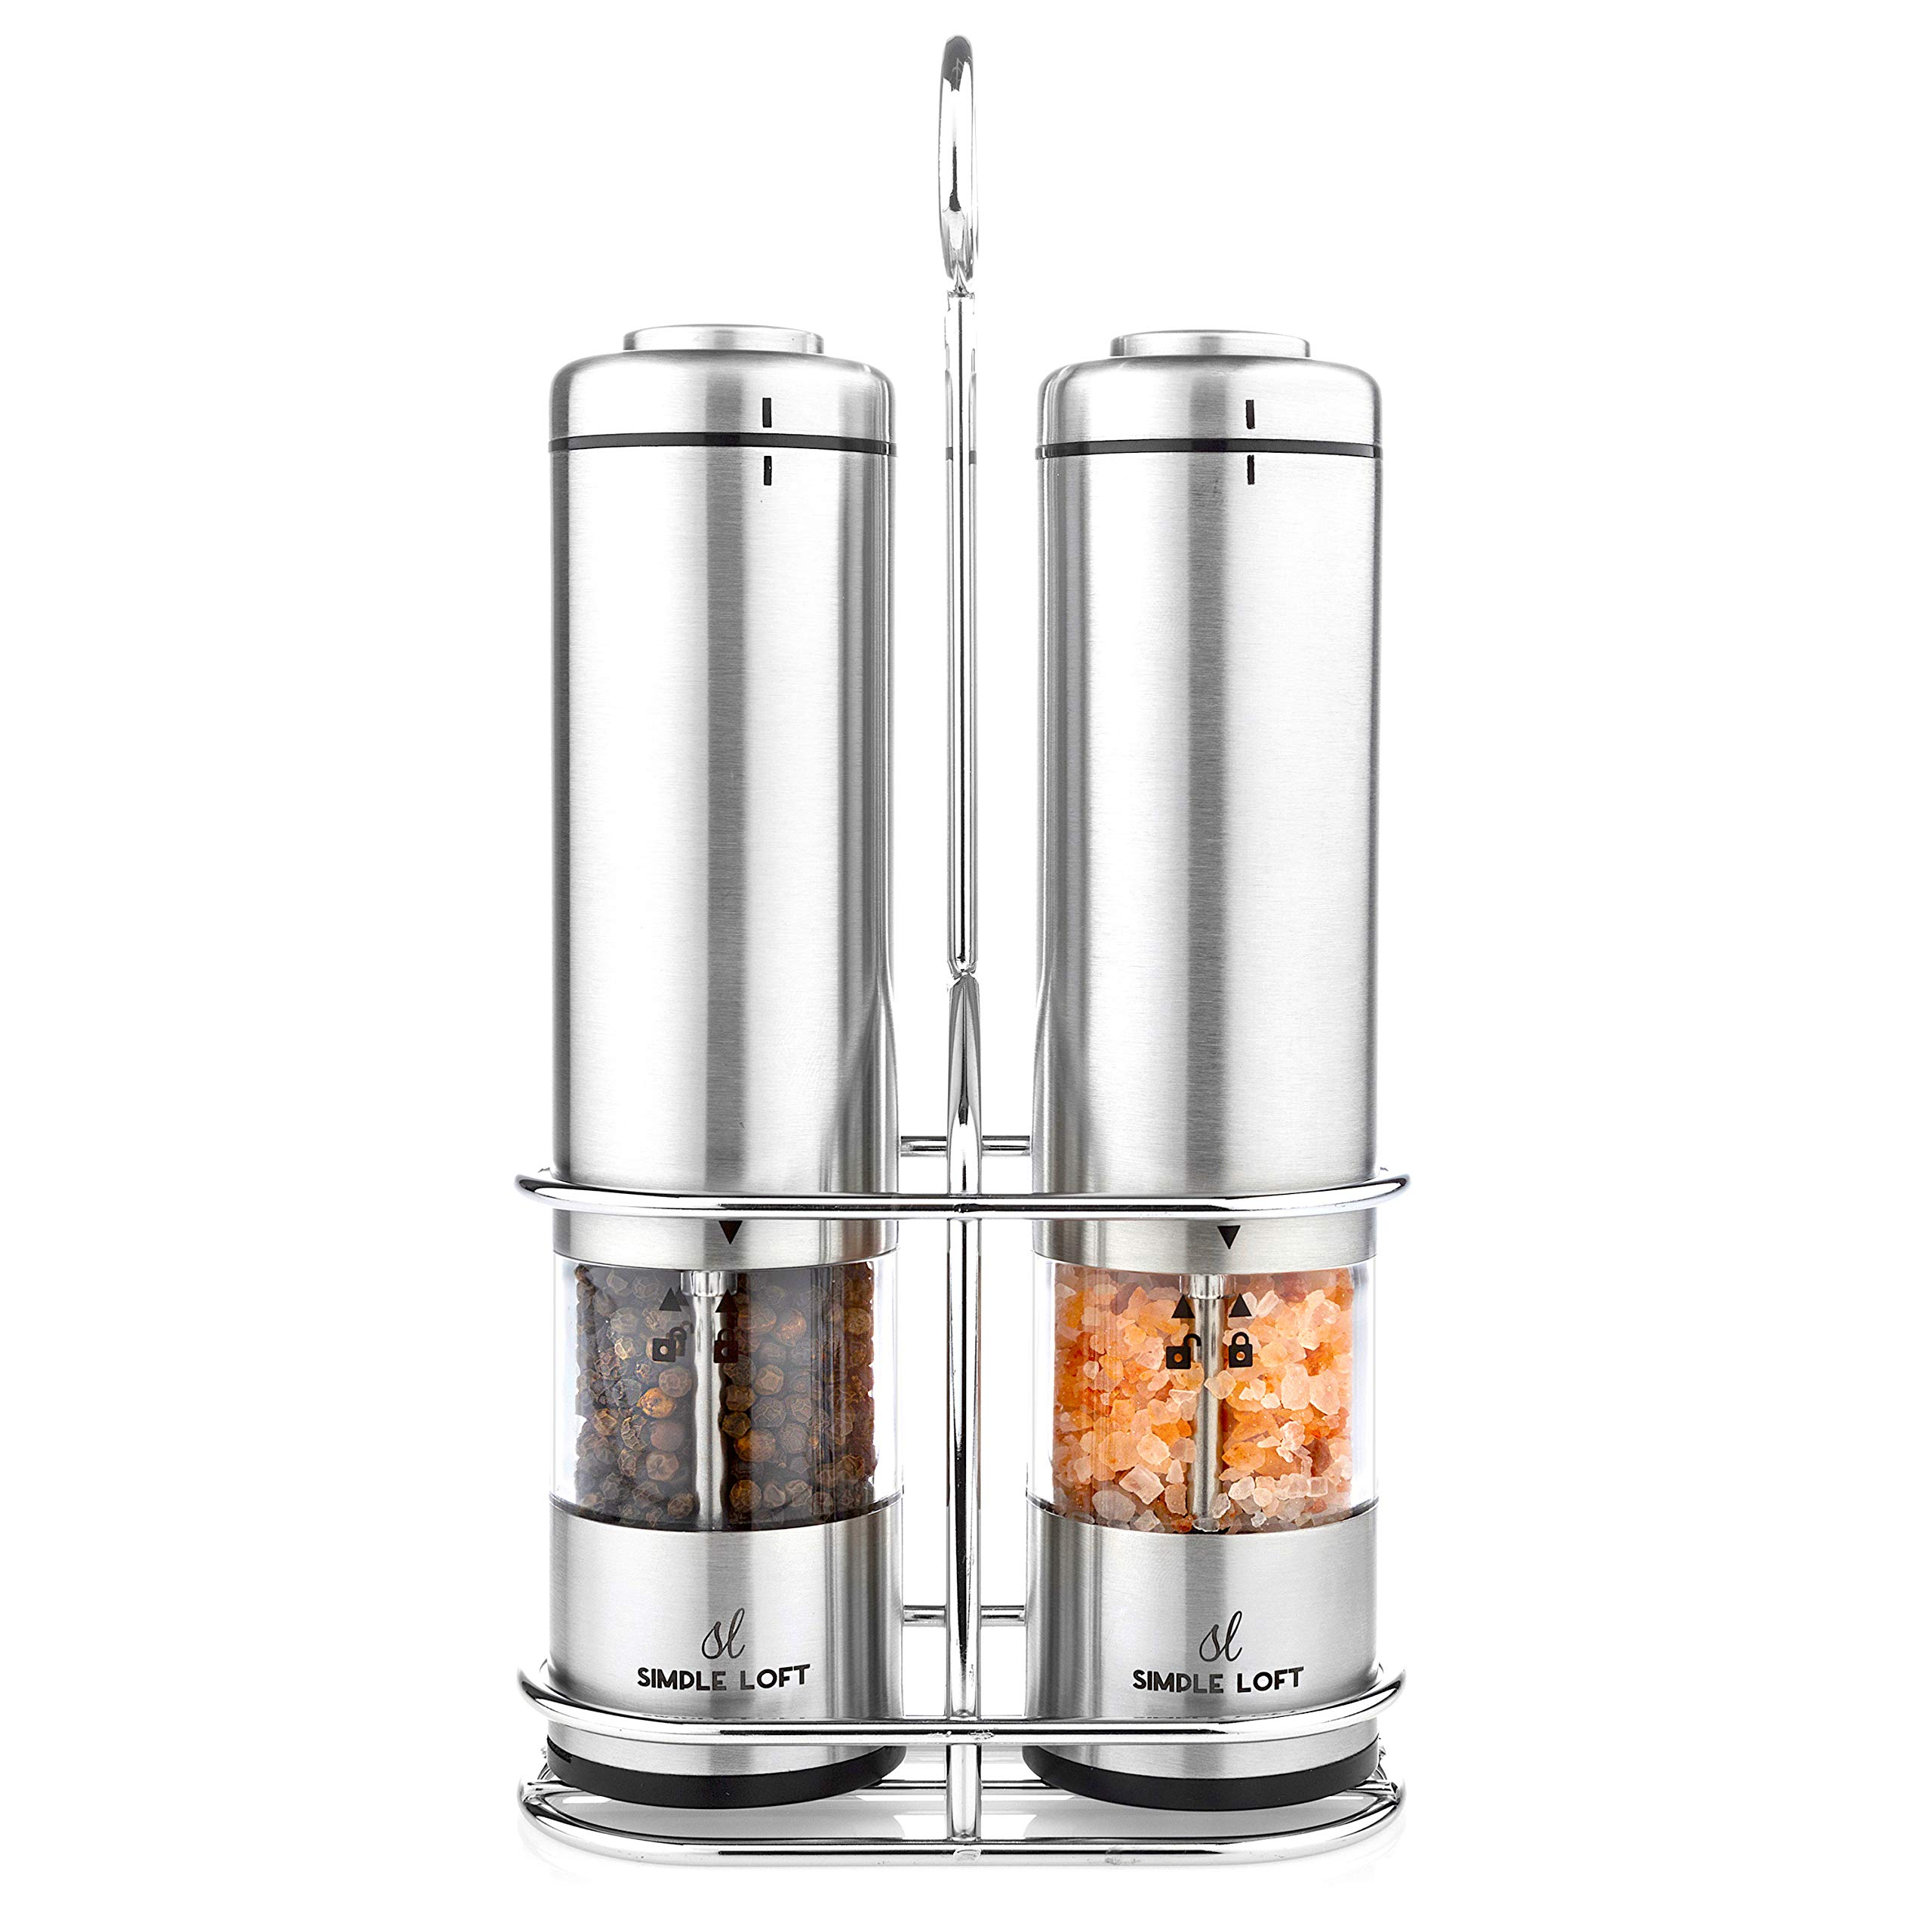 SIMPLE LOFT Salt and Pepper Grinder Electric Set - Automatic Stainless Steel Battery Powered Mills with Light and Metal Stand (2019) by SIMPLE LOFT